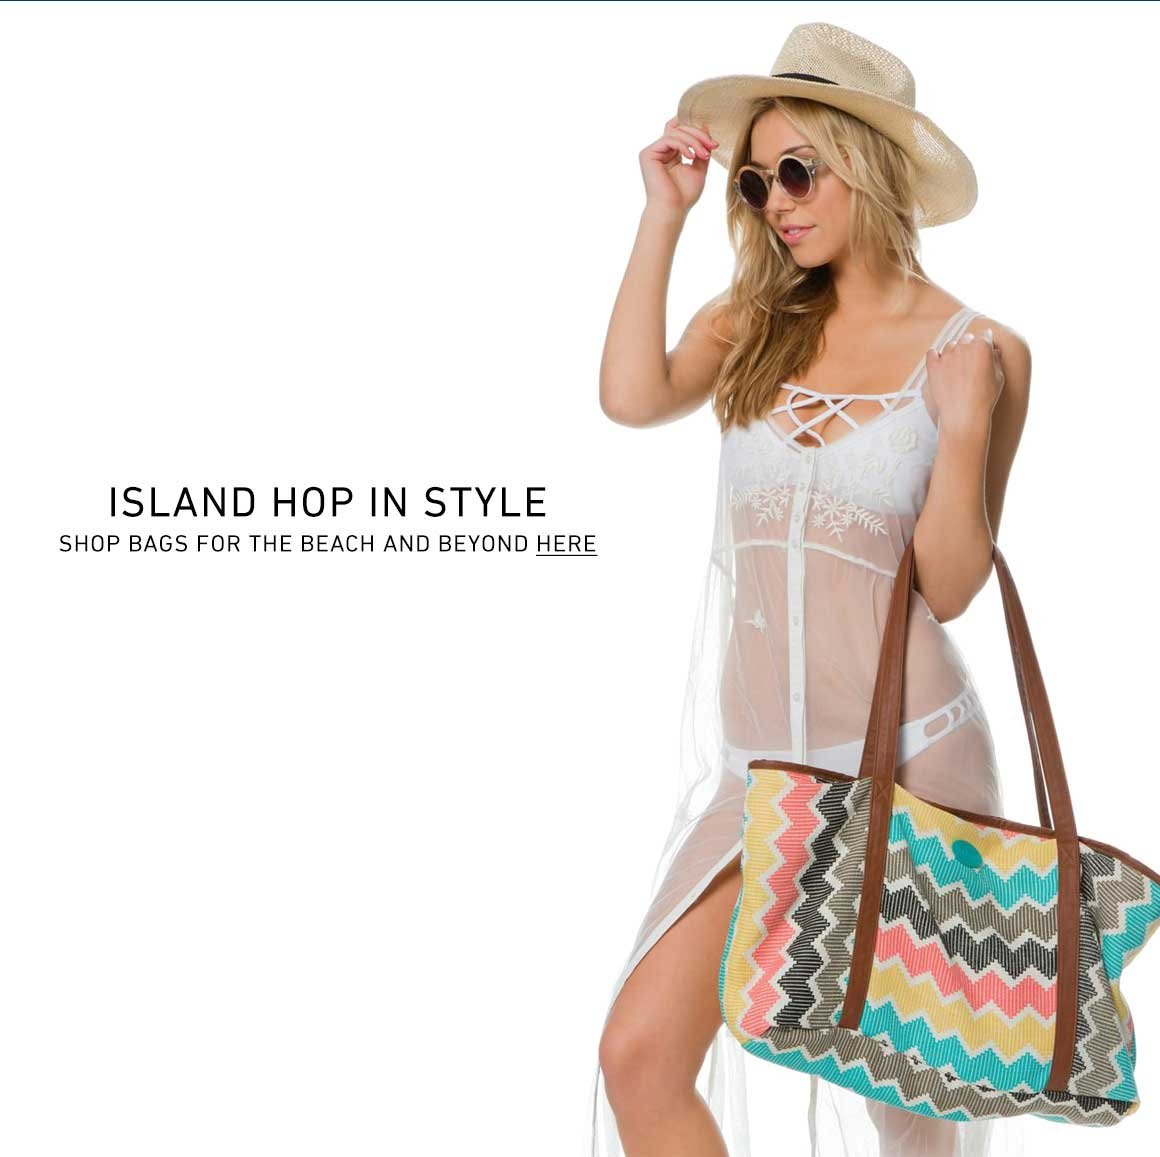 Shop New Bags for the Beach + Beyond